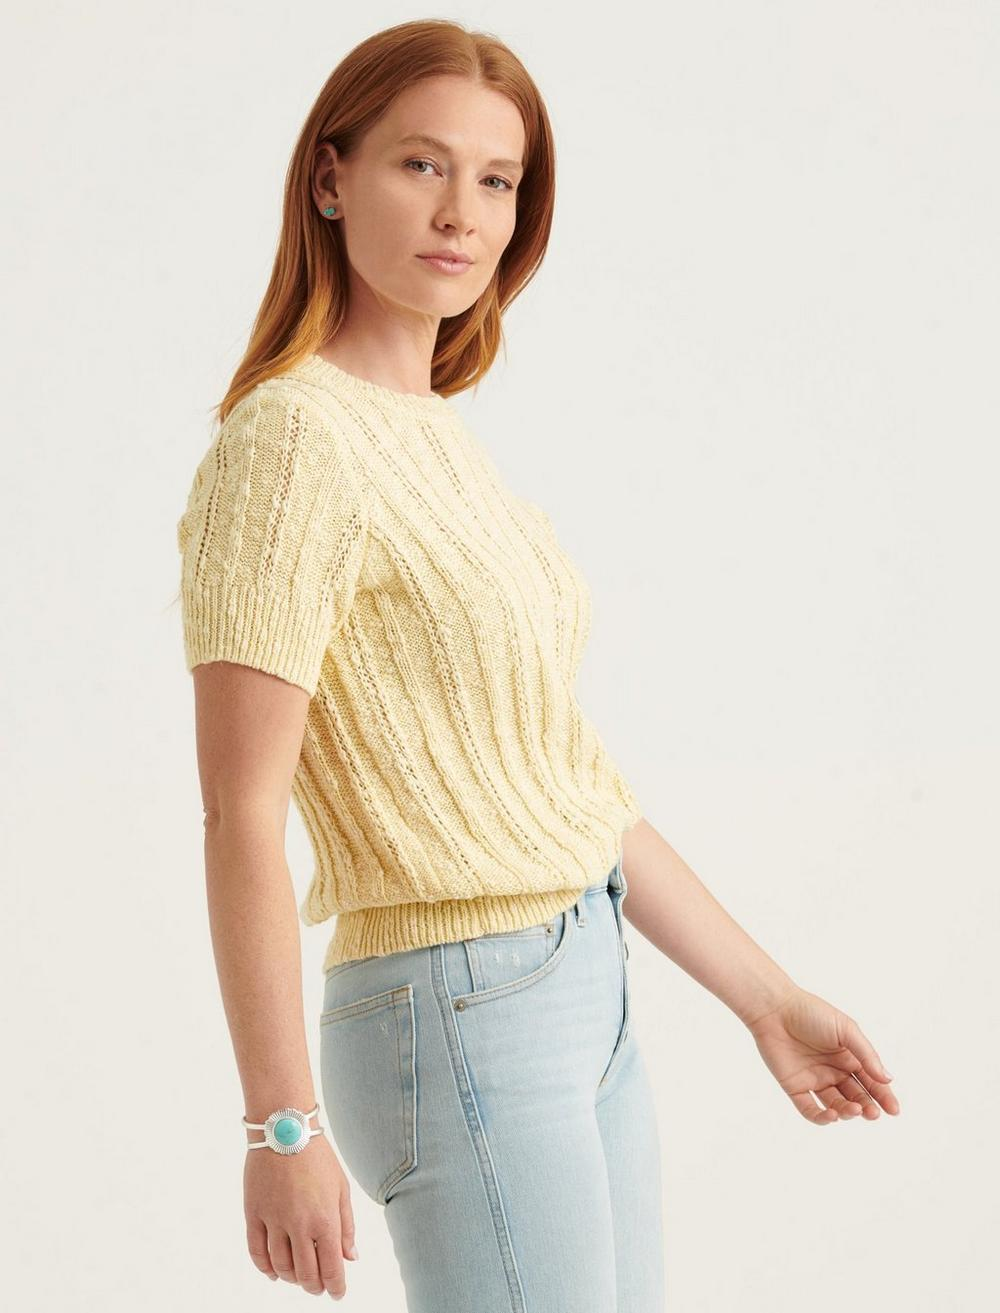 LIGHTWEIGHT SHORT SLEEVE CABLE SWEATER, image 3